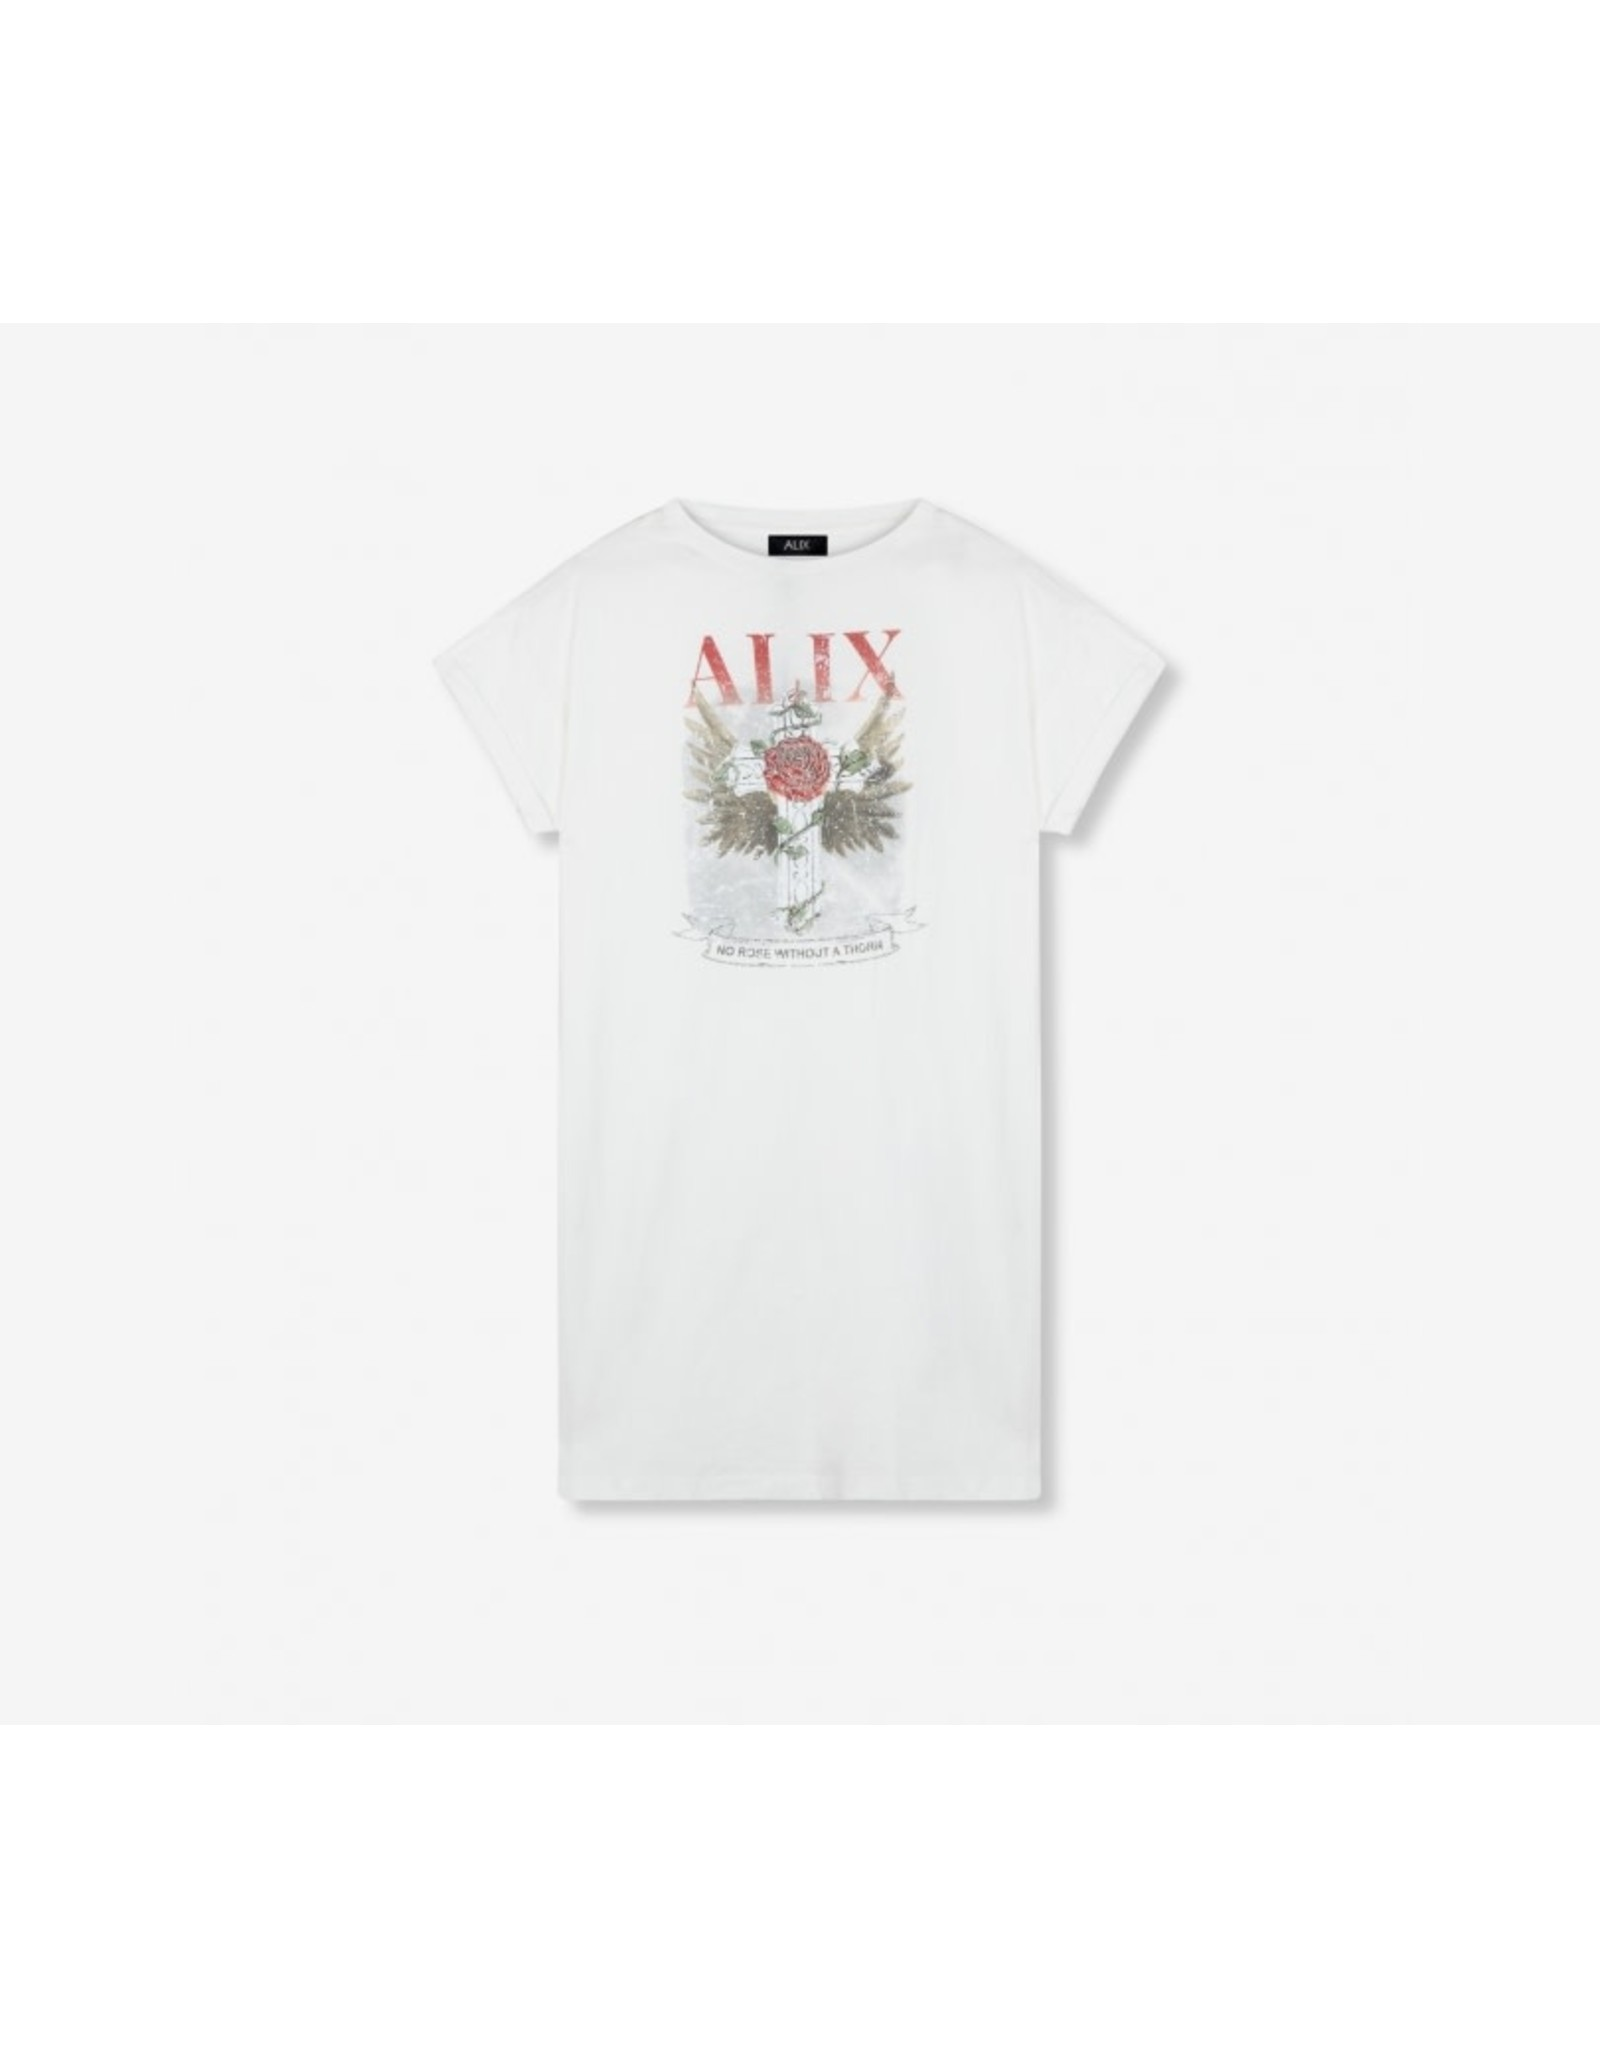 ALIX THE LABEL LONG T-SHIRT VINTAGE JERSEY WHITE